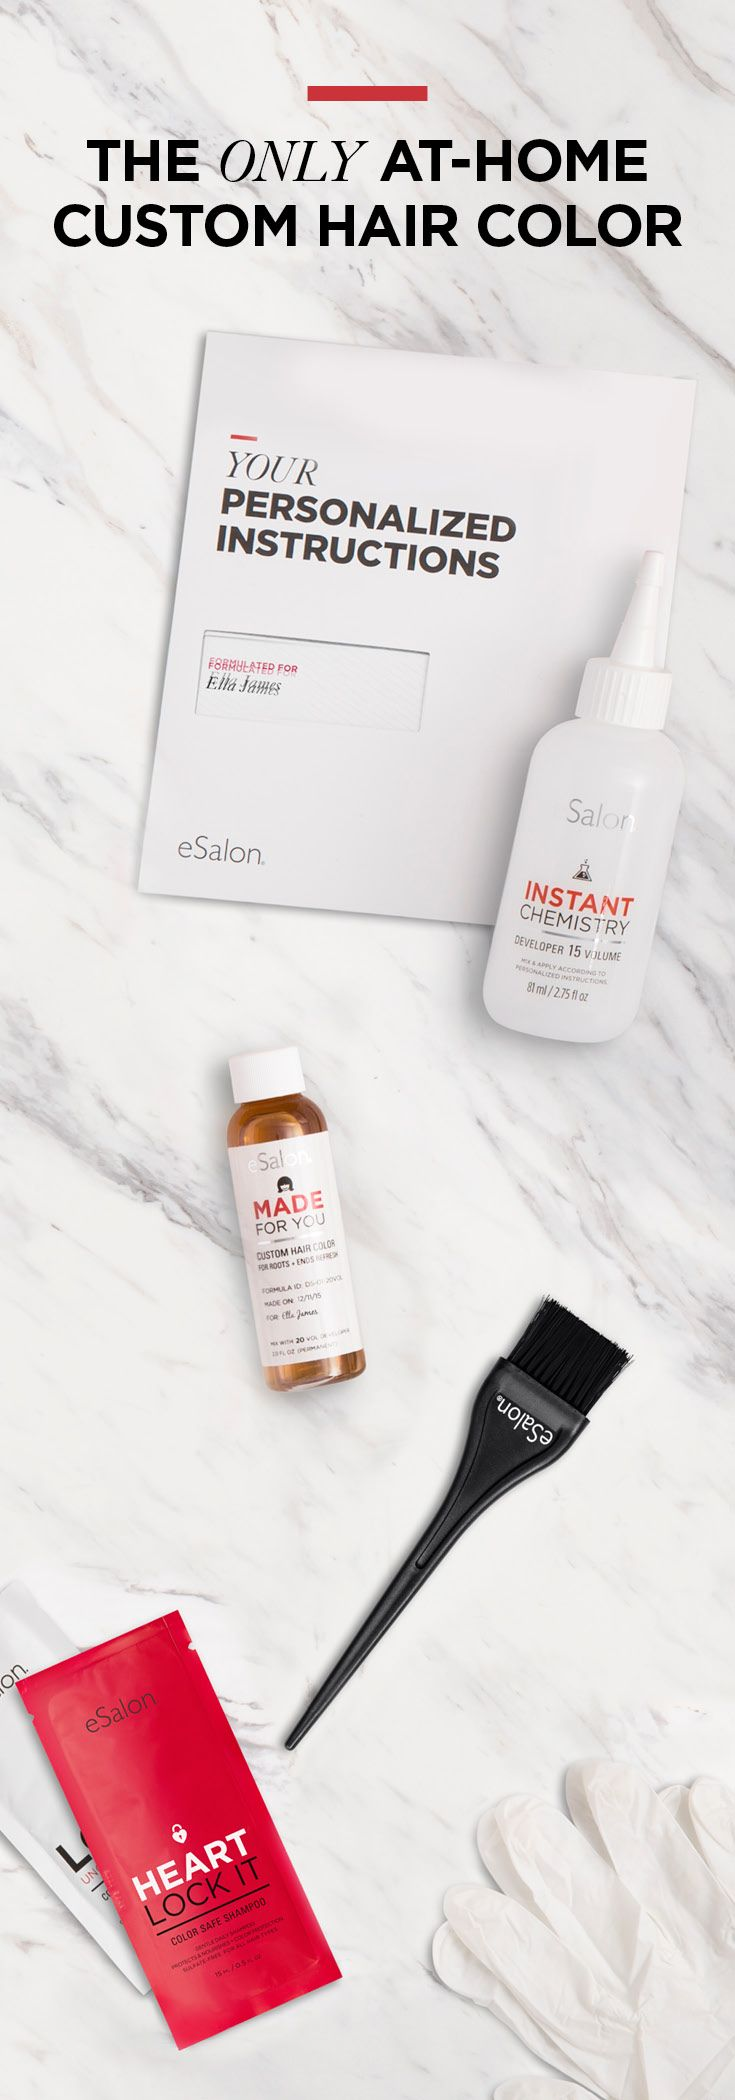 See Why Allure Magazine Voted Us